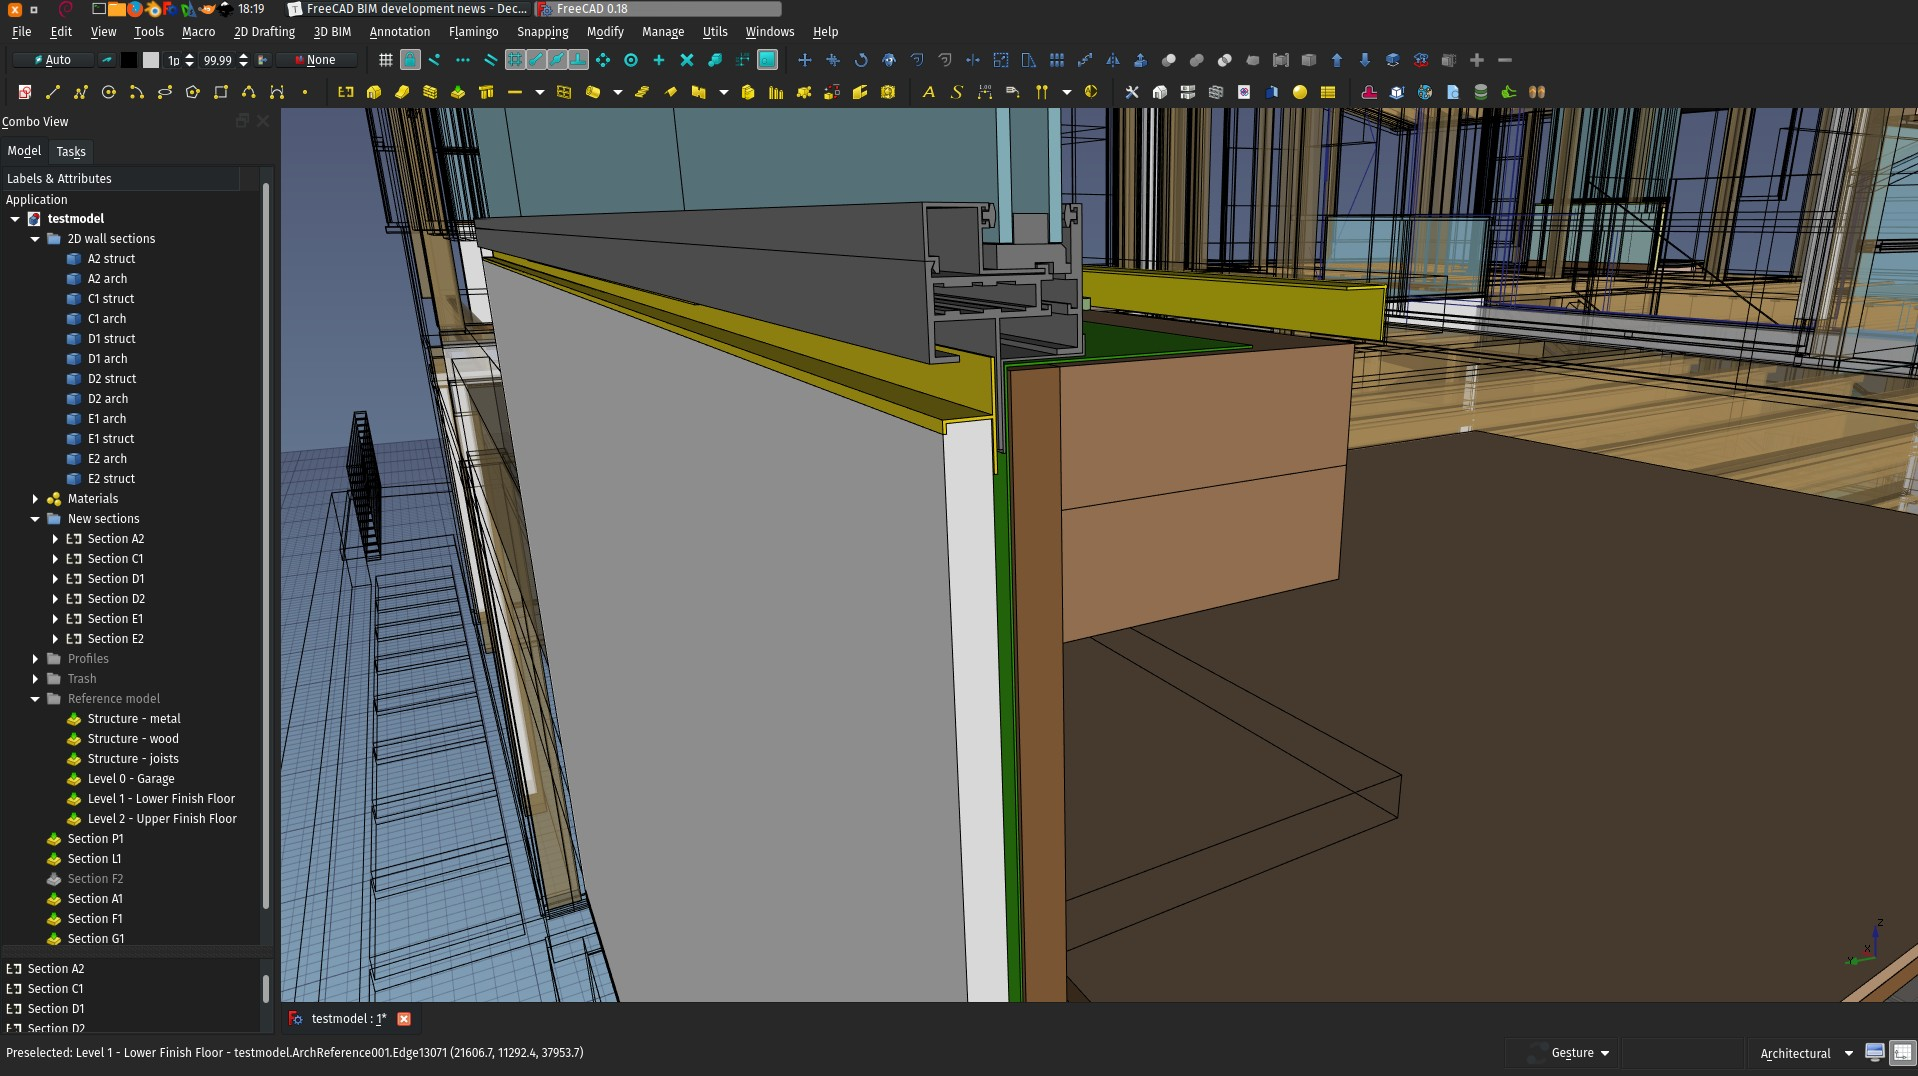 generic screenshot of FreeCAD